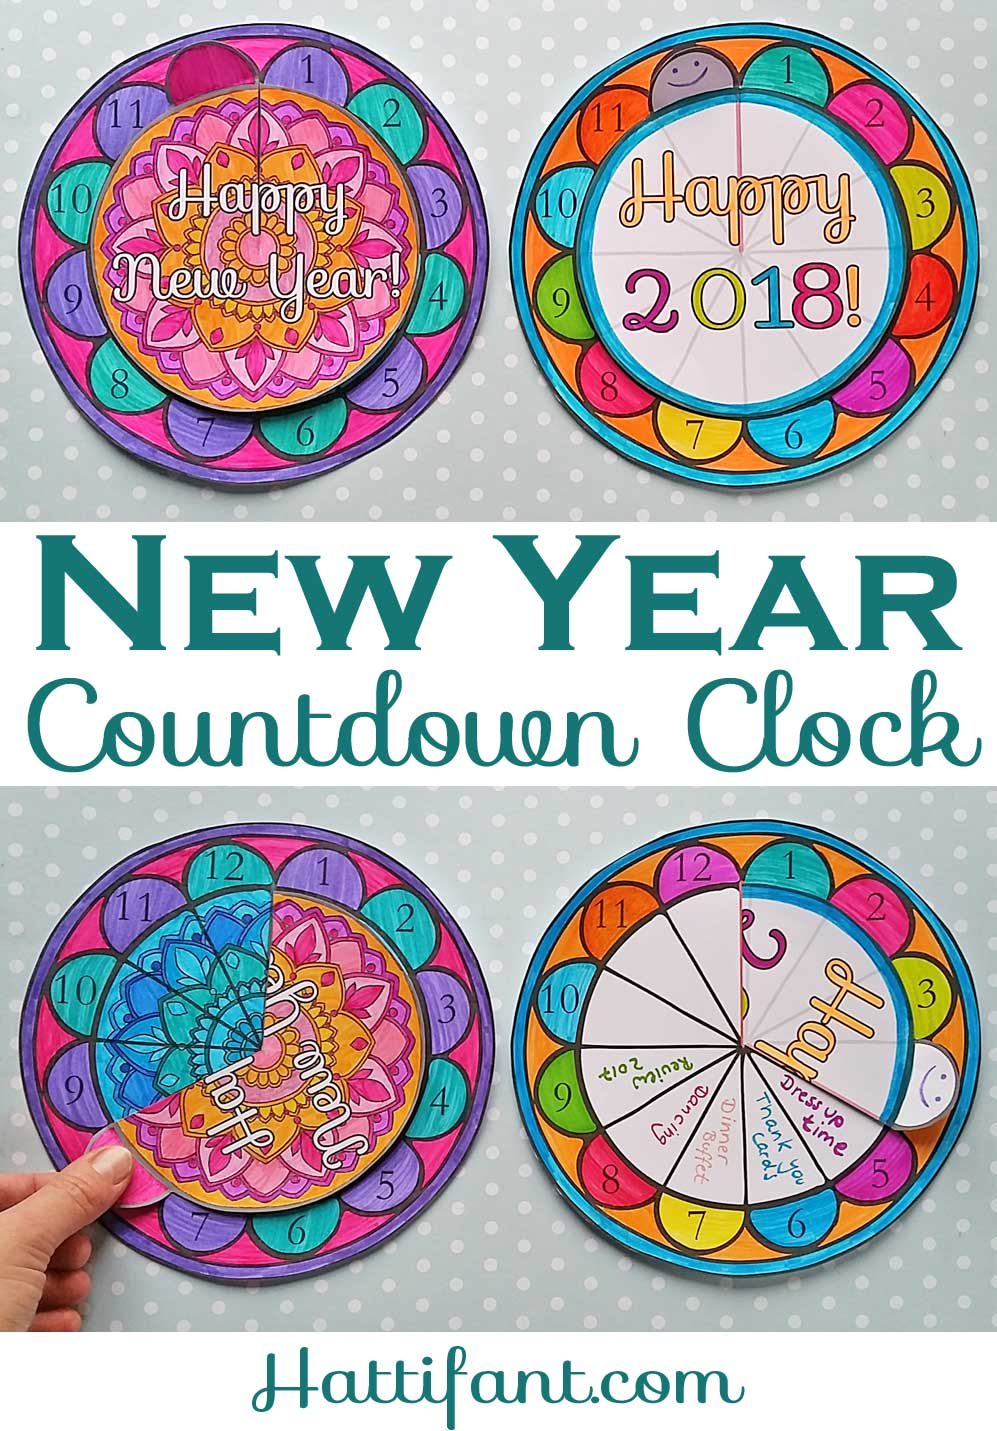 Hattifant's New Year Countdown Clock Papercraft to color in 2018